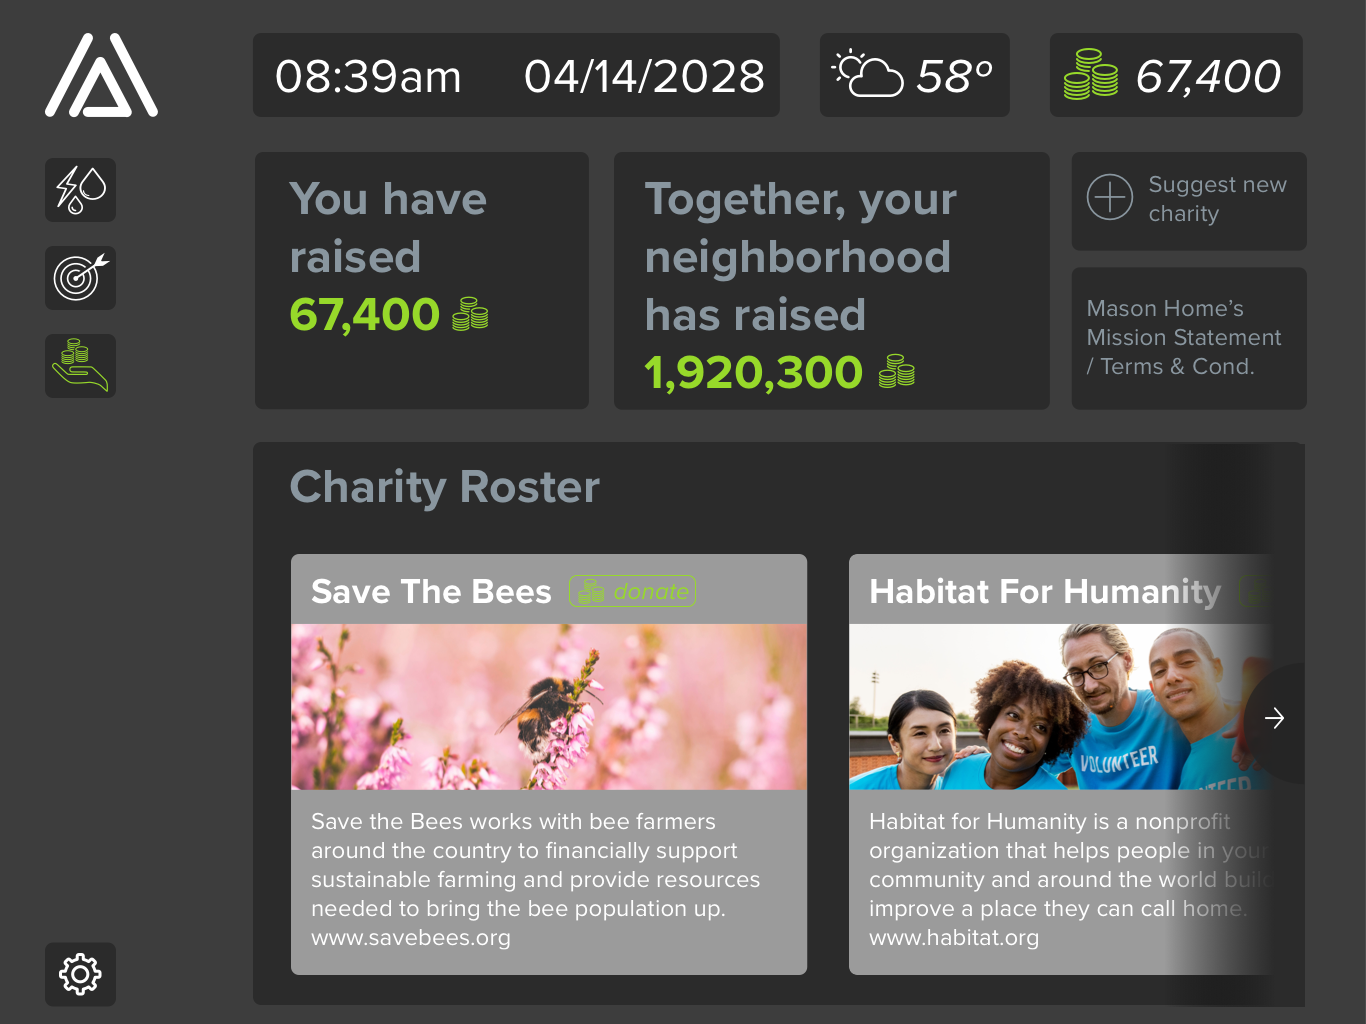 Charity —  When the user decides that it's time to use their mason coins, they go to the charity page and select a charity they wish to donate coins to, they can also suggest new charities that would be added to their regional roster.